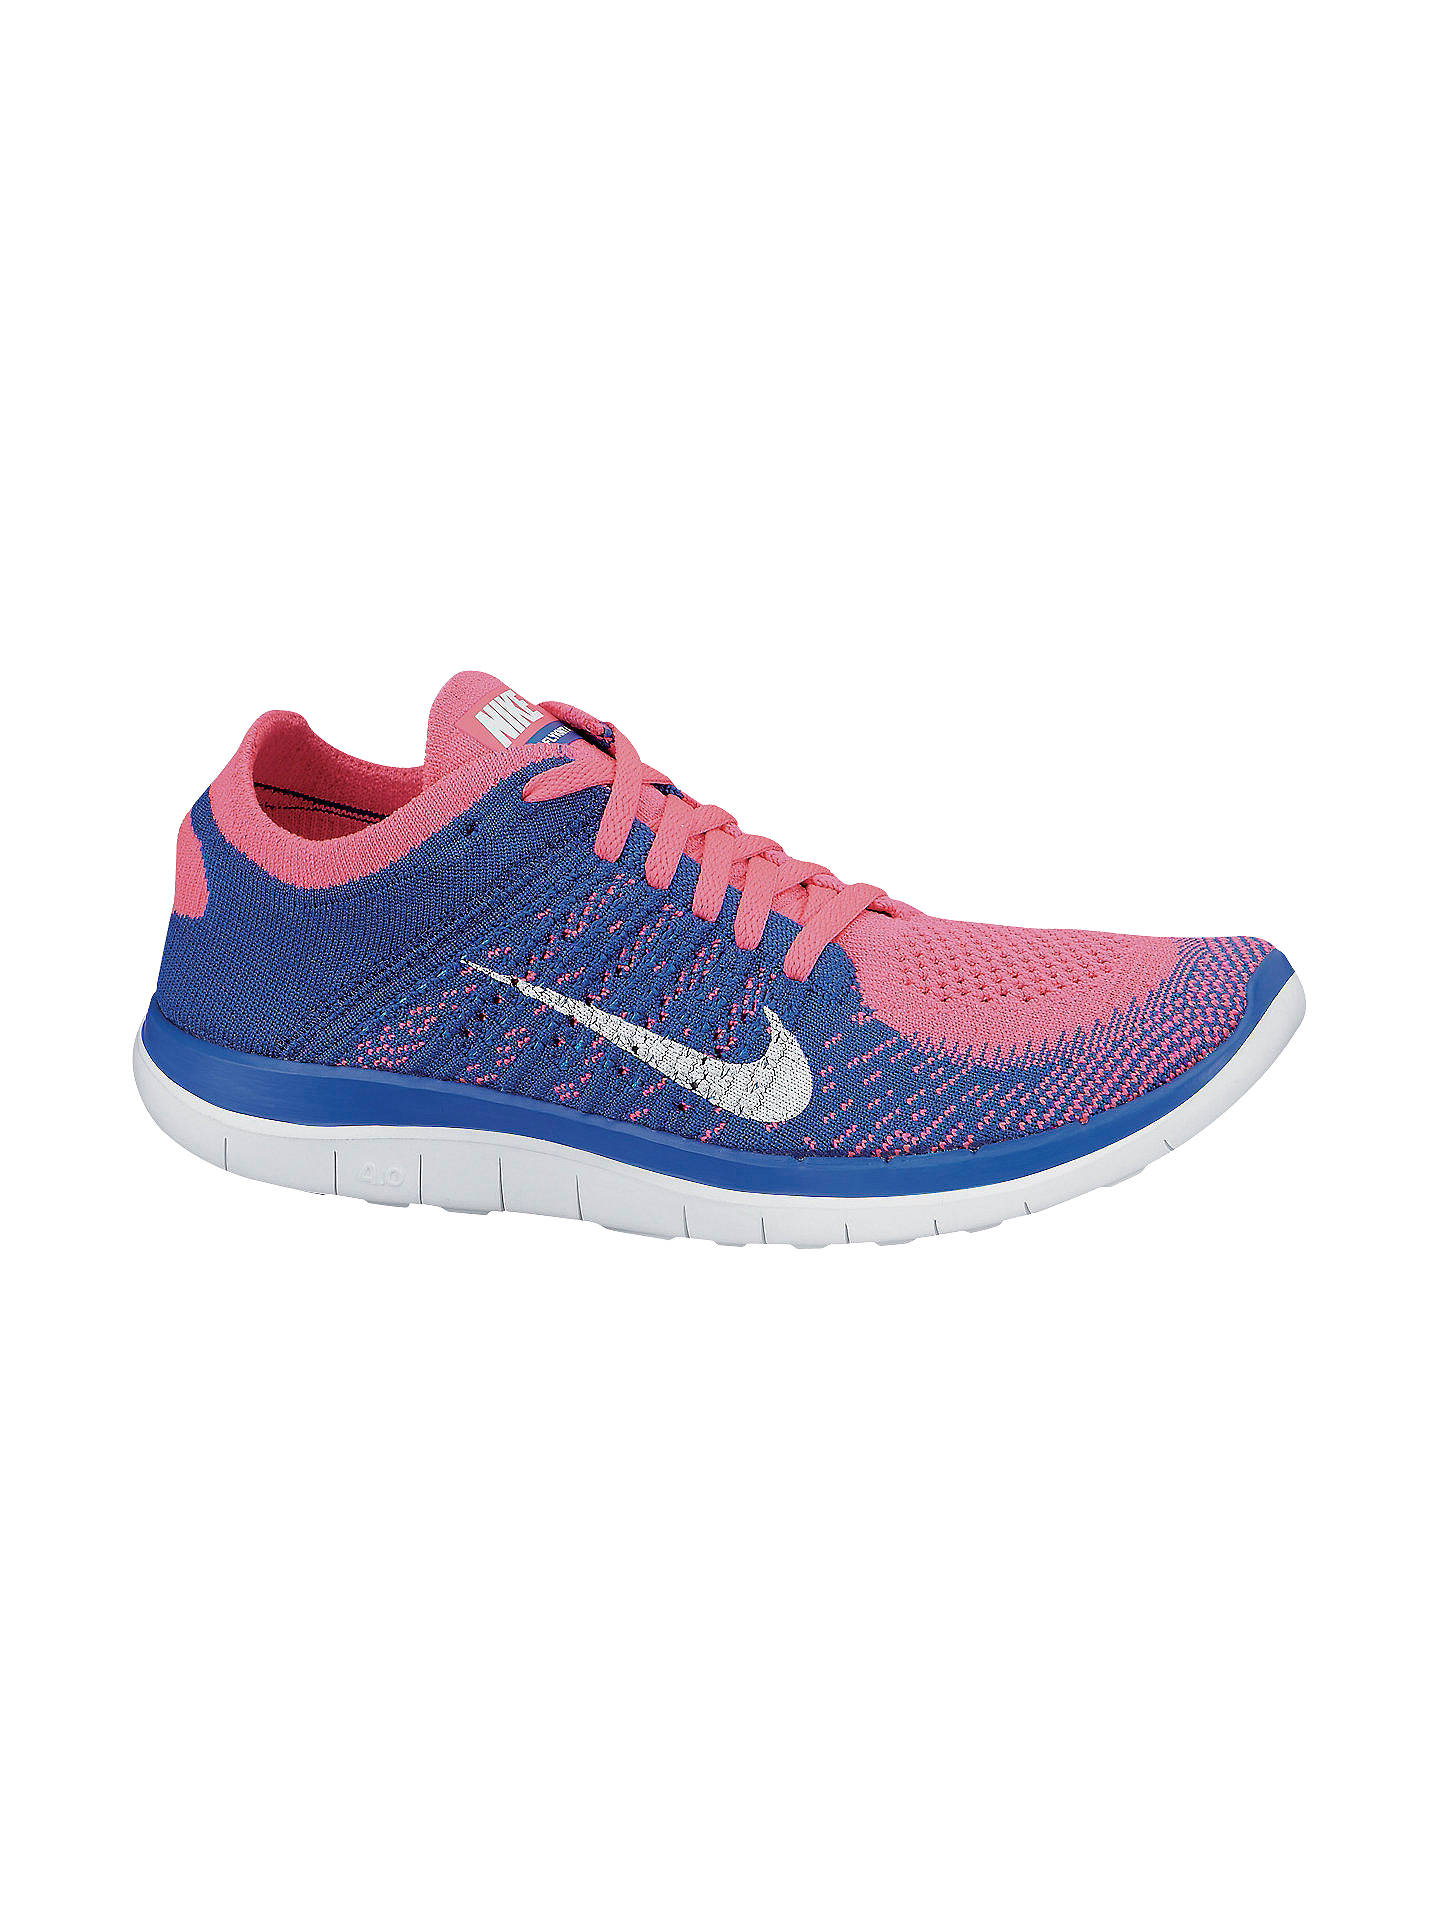 Irónico Reposición Estados Unidos  Nike Women's Free 4.0 Flyknit Running Shoes, Blue/Pink at John Lewis &  Partners